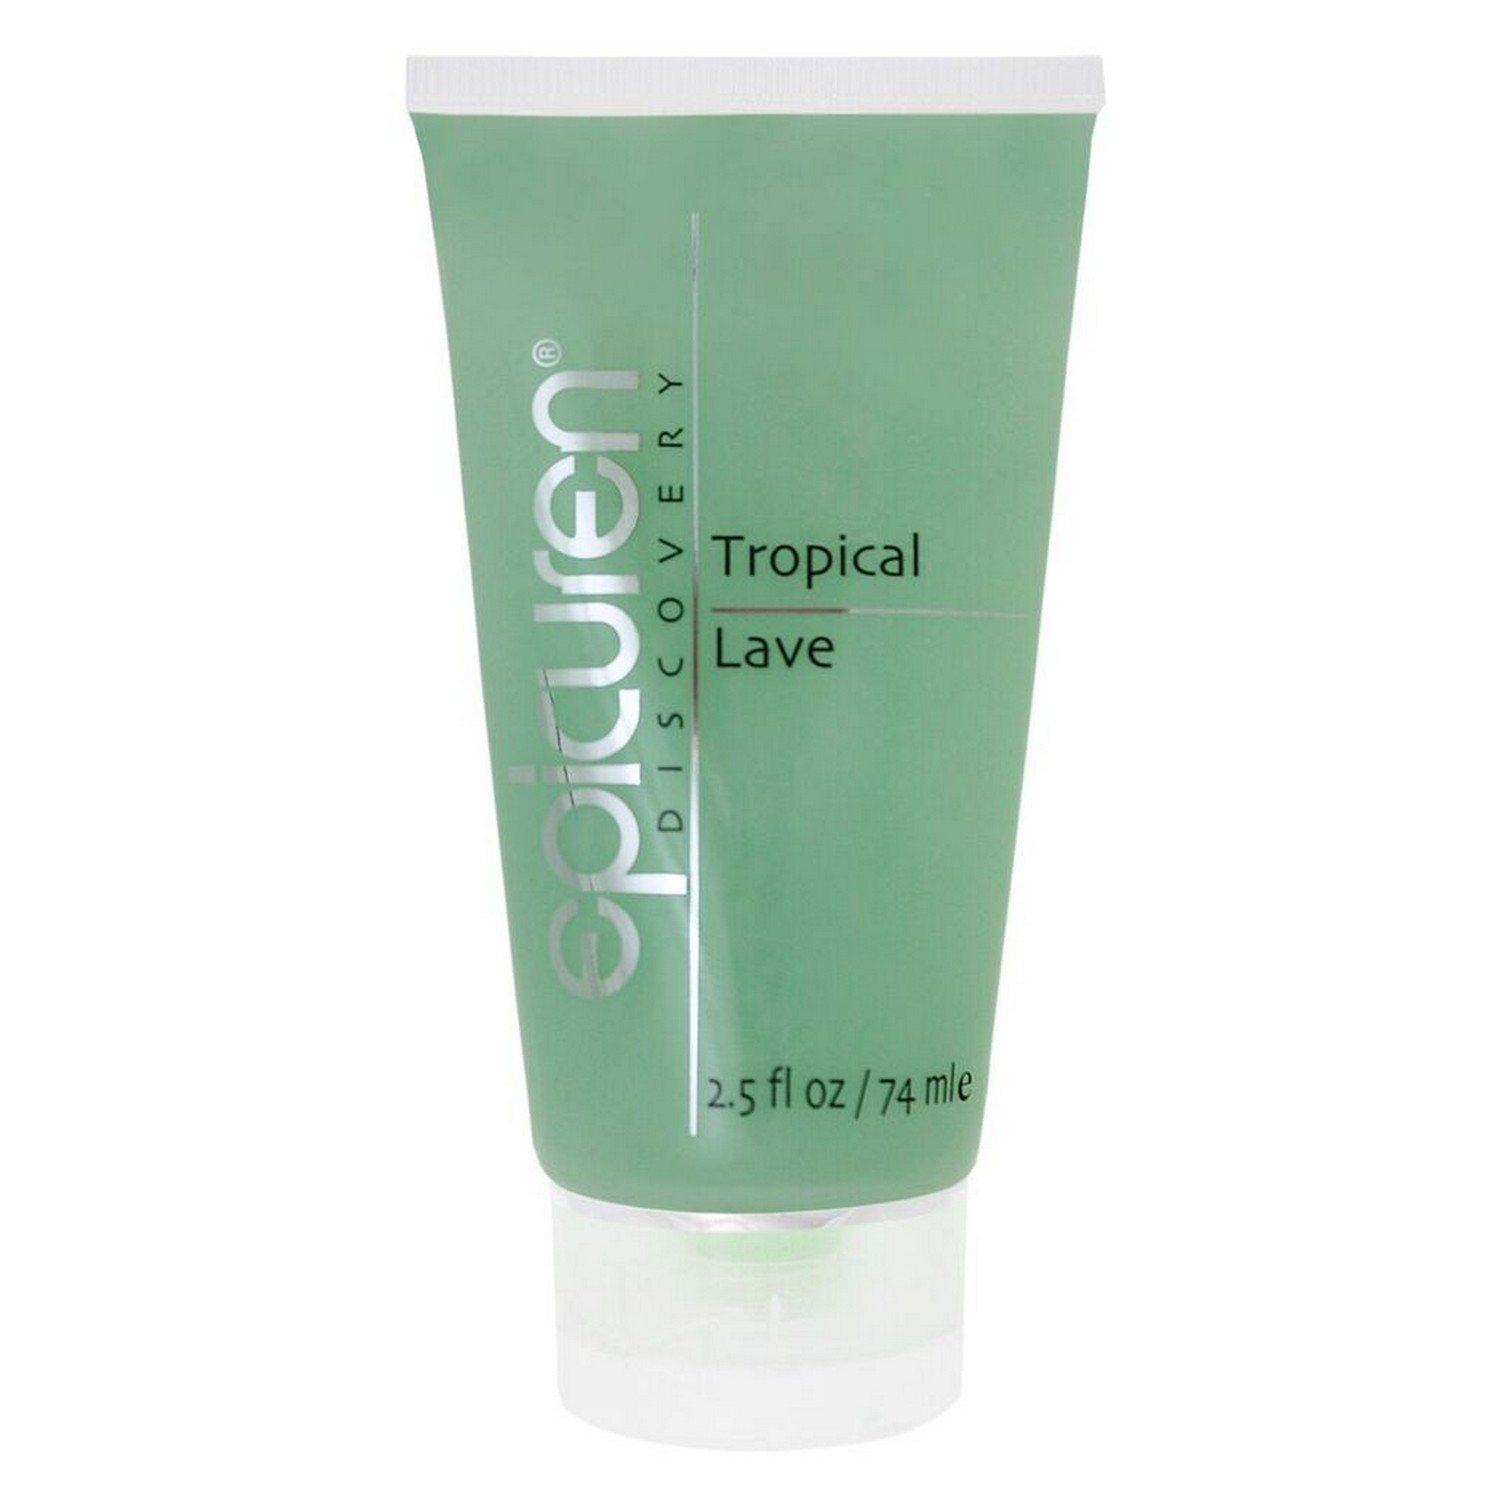 epicuren Discovery Tropical Lave Body Cleanser (2.5 fl oz / 74 ml)